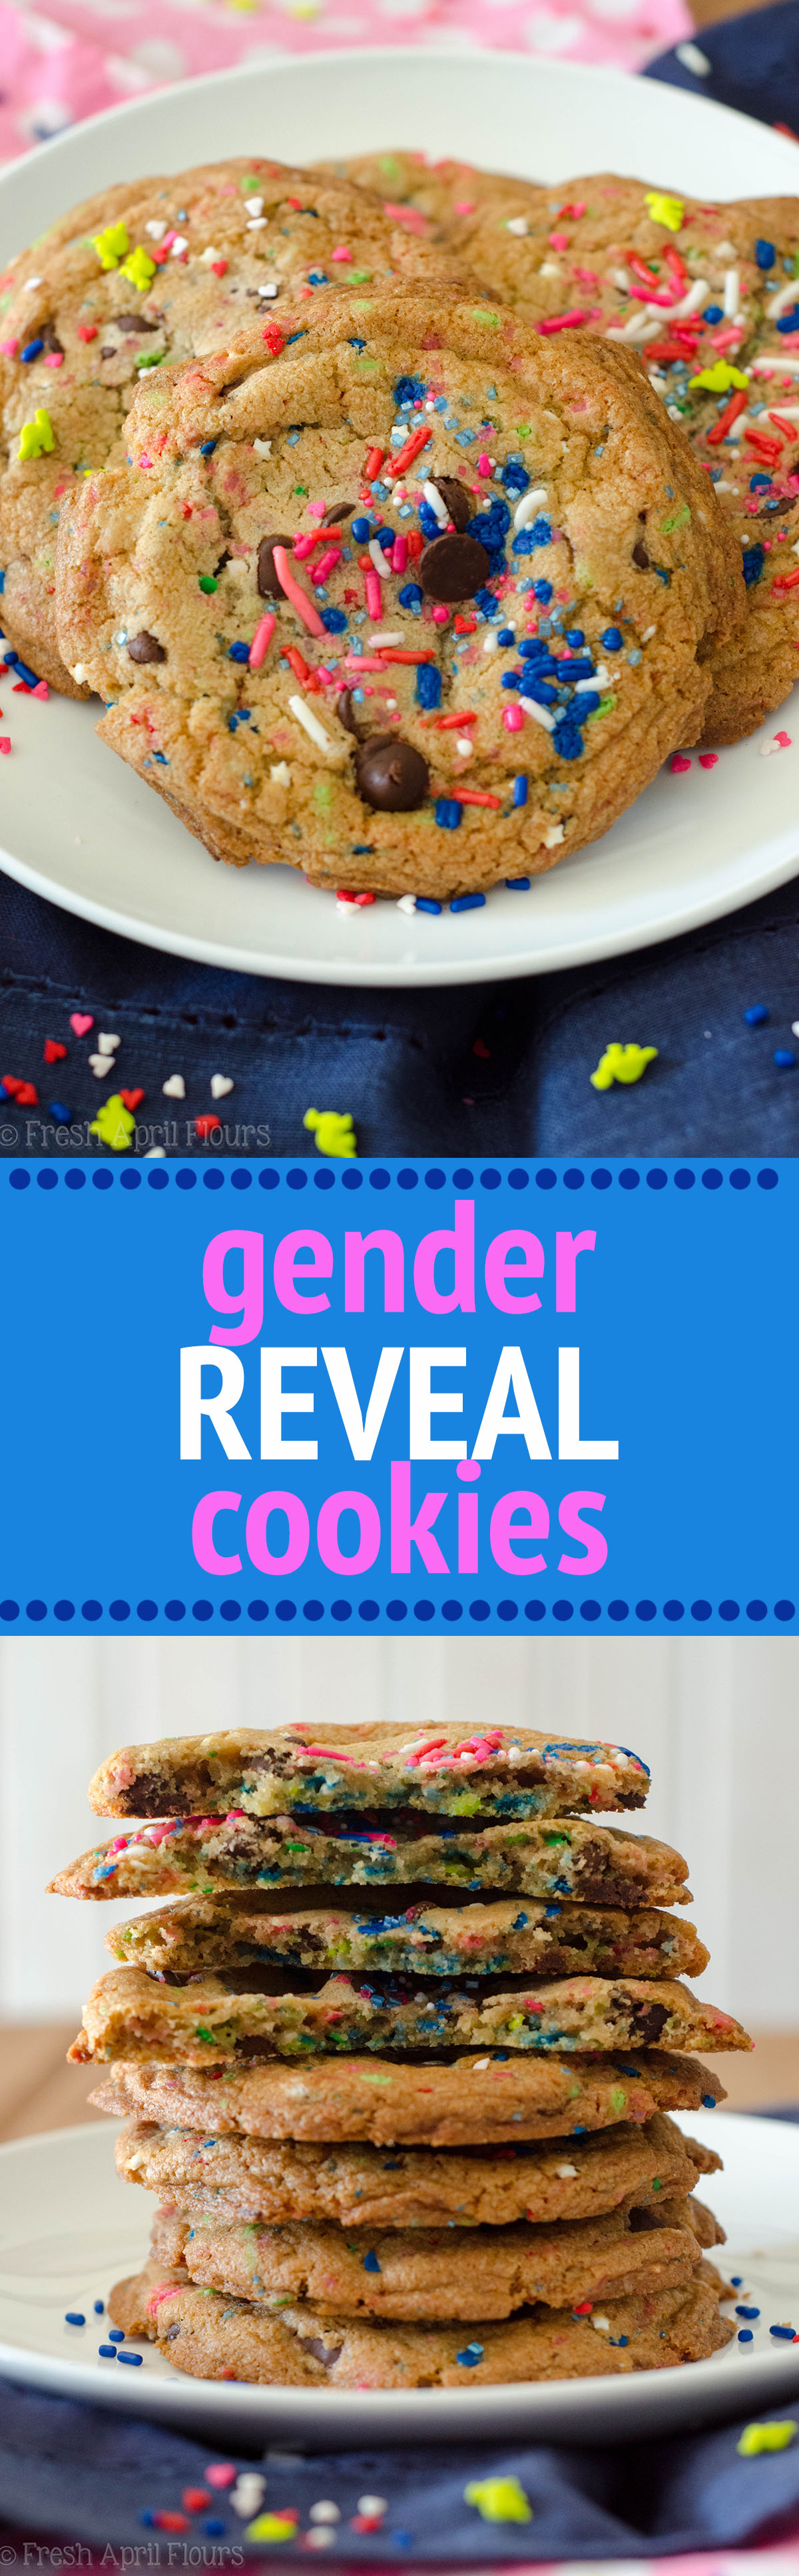 Gender Reveal Cookies: Classic chocolate chip cookies baked with a surprise of colored sprinkles inside perfect for revealing the gender of a baby.